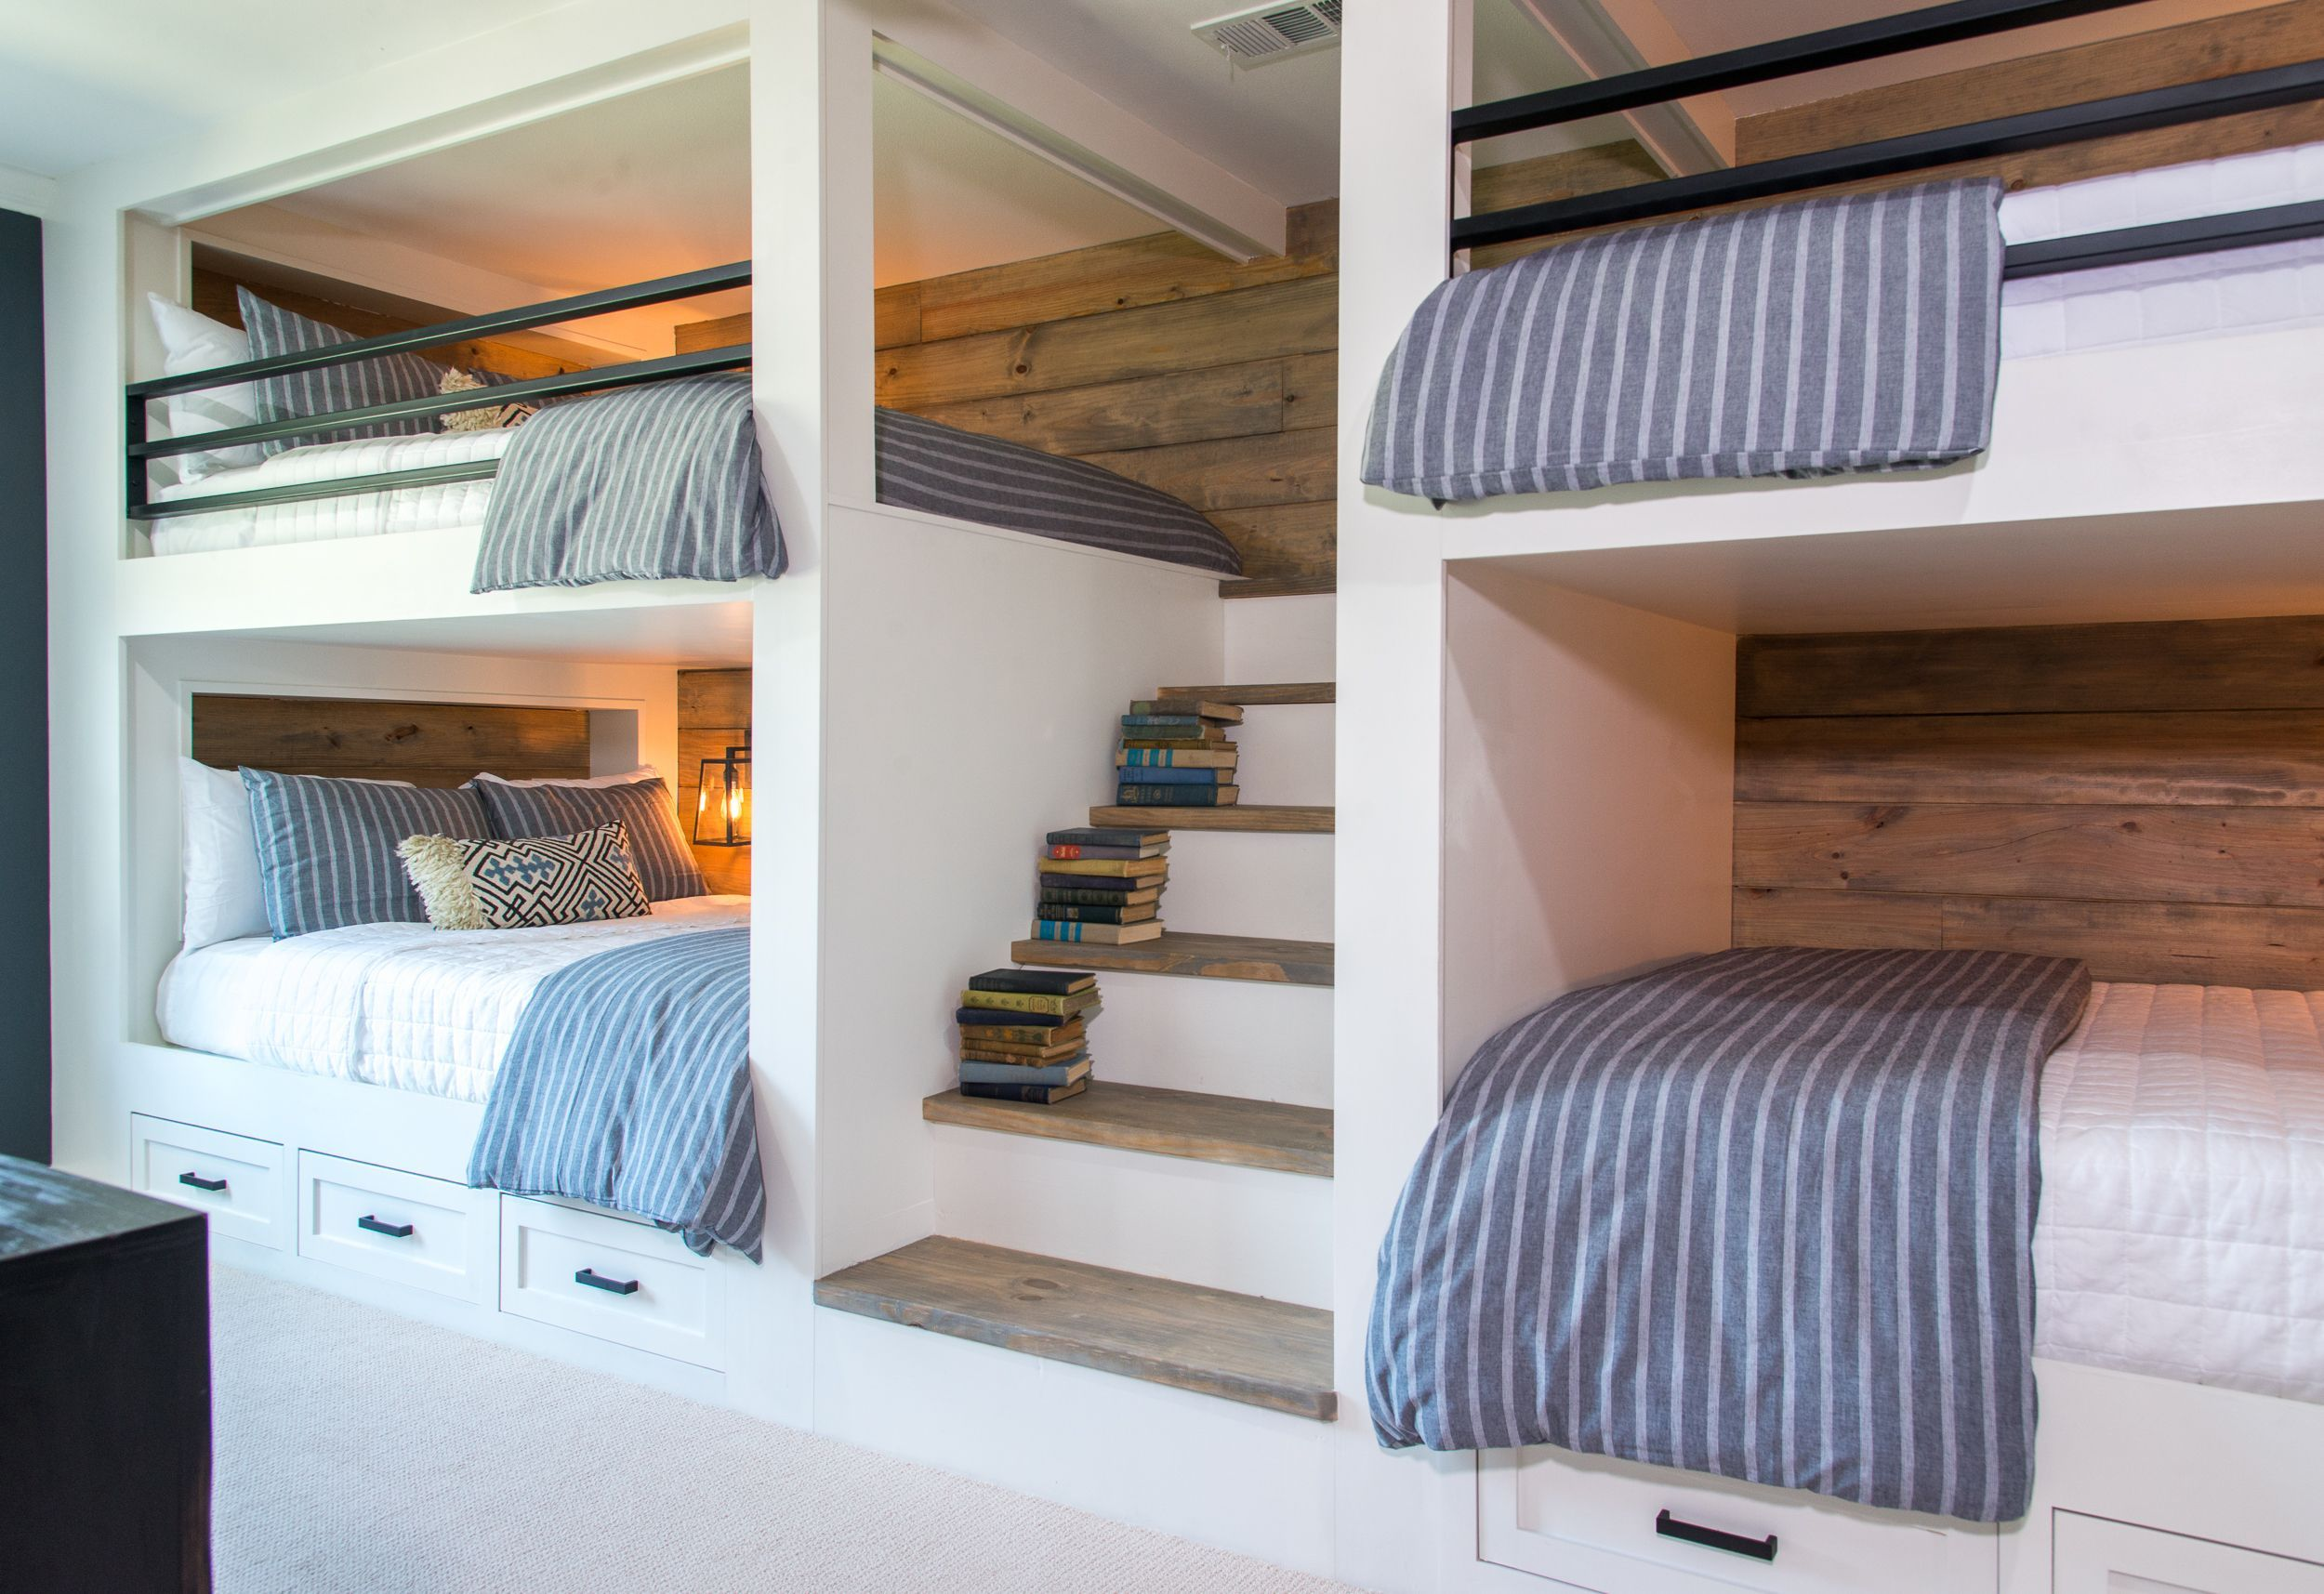 Episode 04 The Big Country House With Images Bunk Beds Built